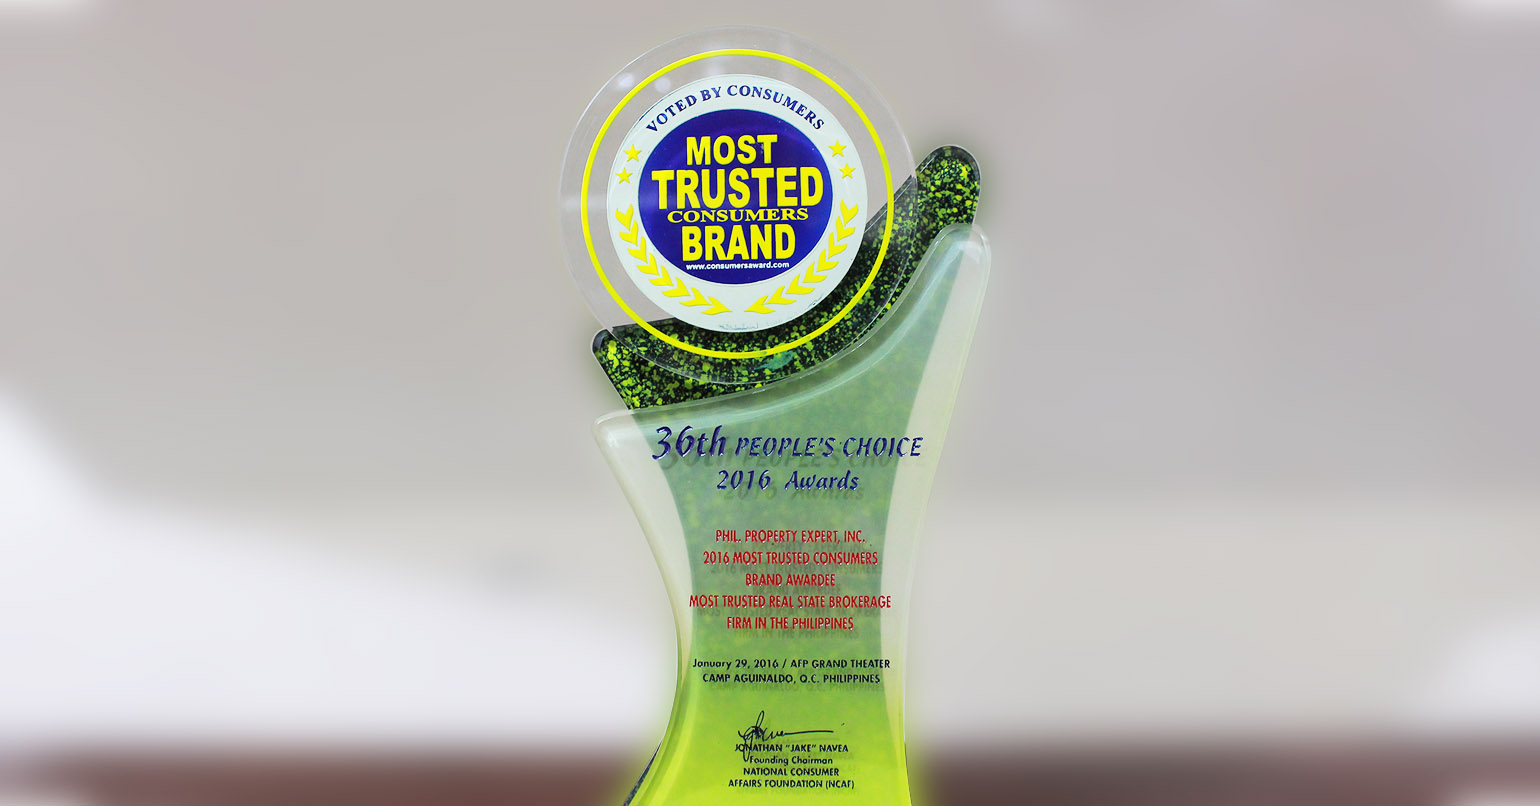 Most Trusted Real Estate Brokerage in the Philippines